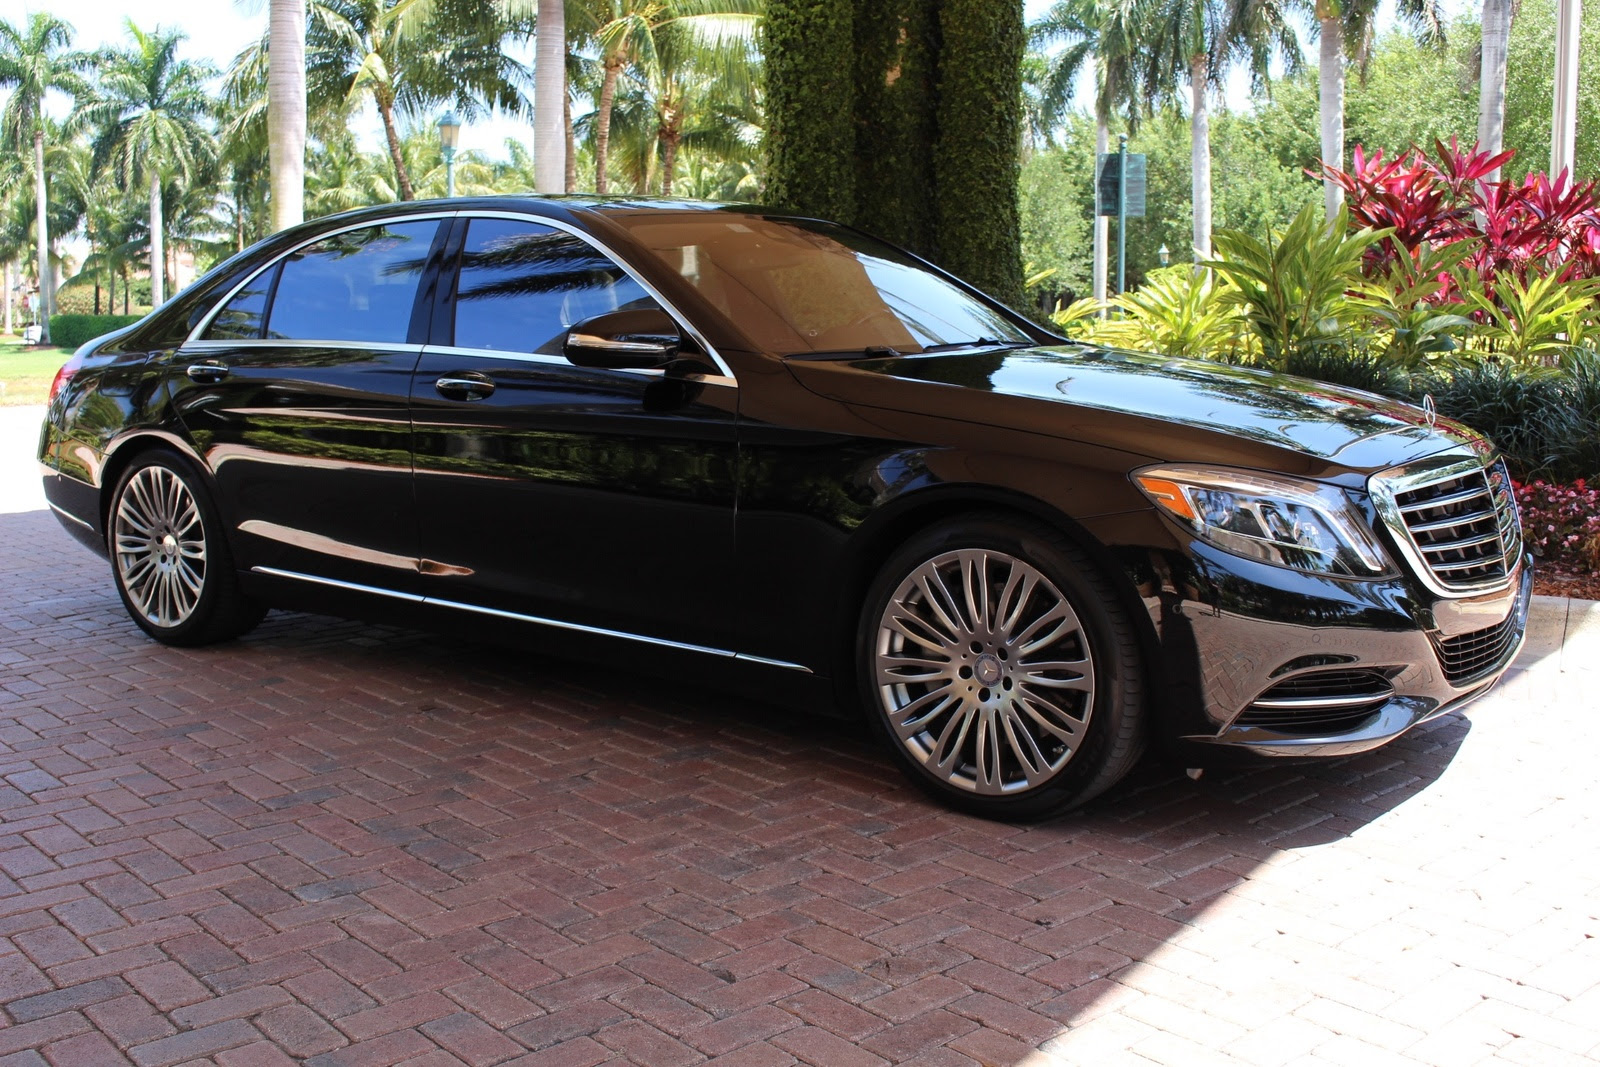 New 2015 / 2016 Mercedes-Benz S-Class For Sale - CarGurus